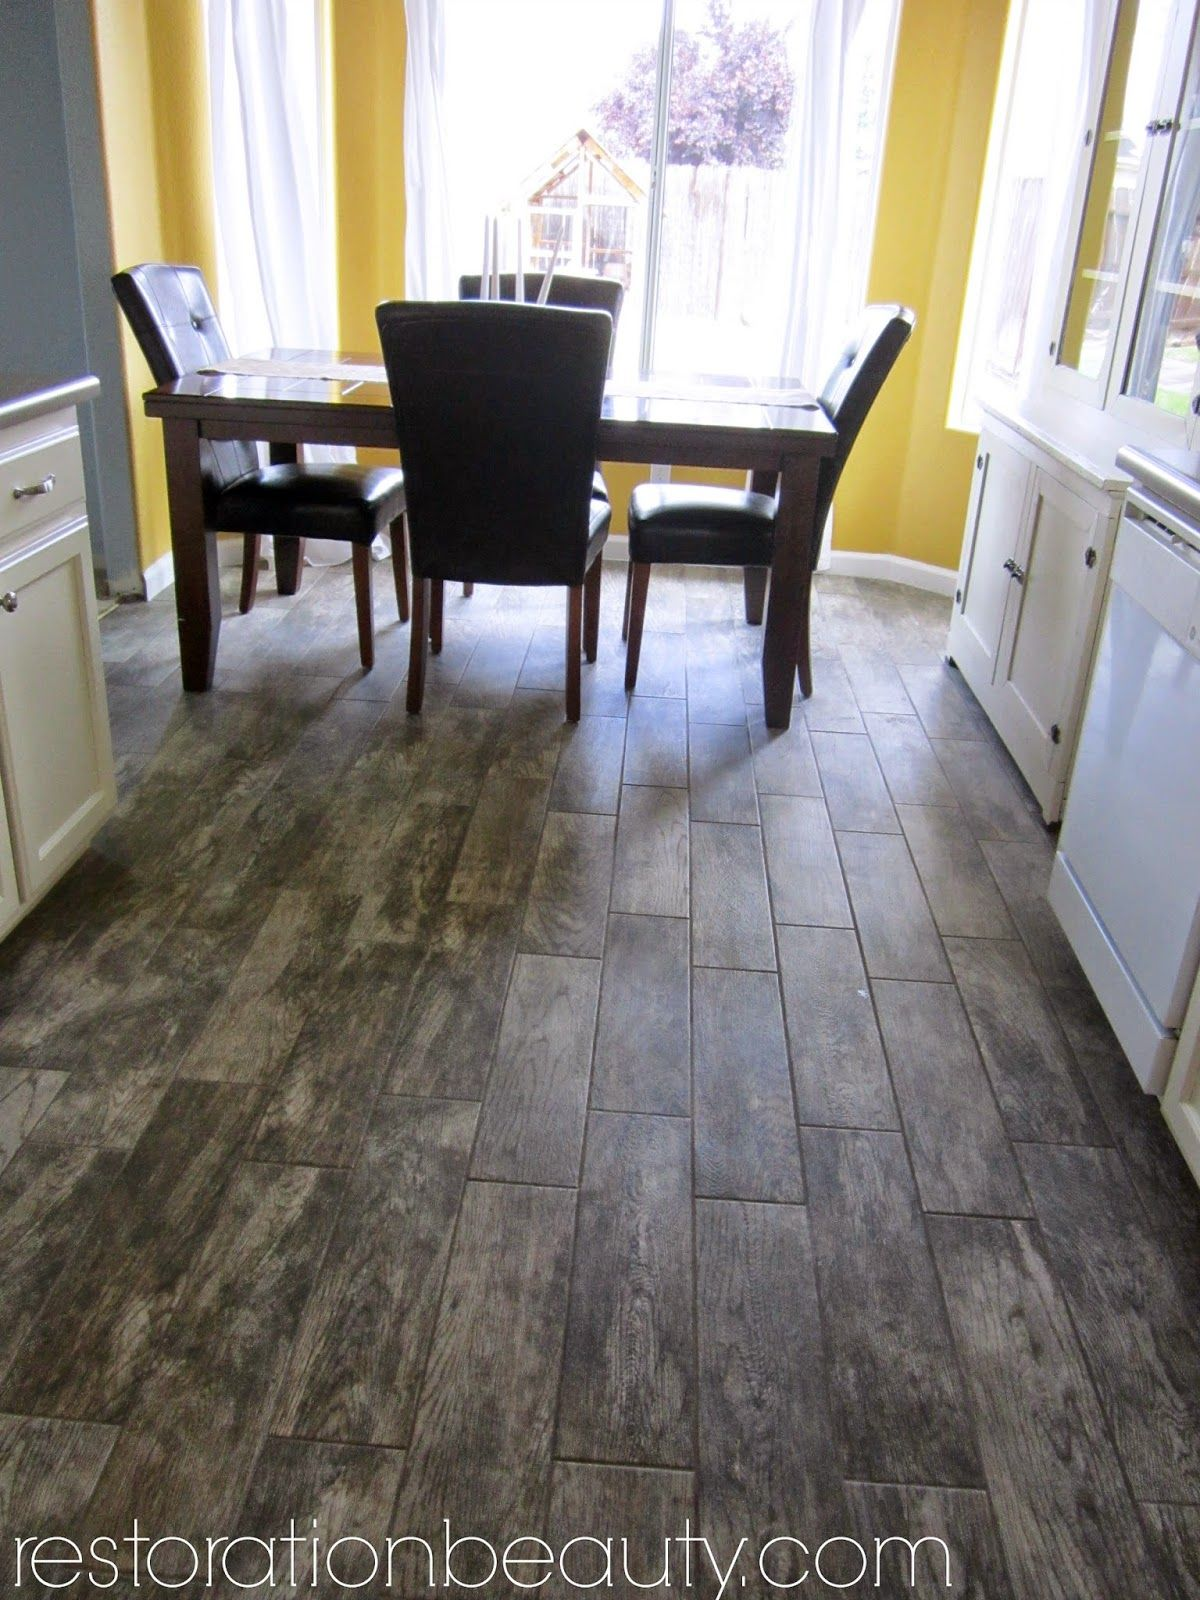 Faux Wood Tile Flooring In the Kitchen